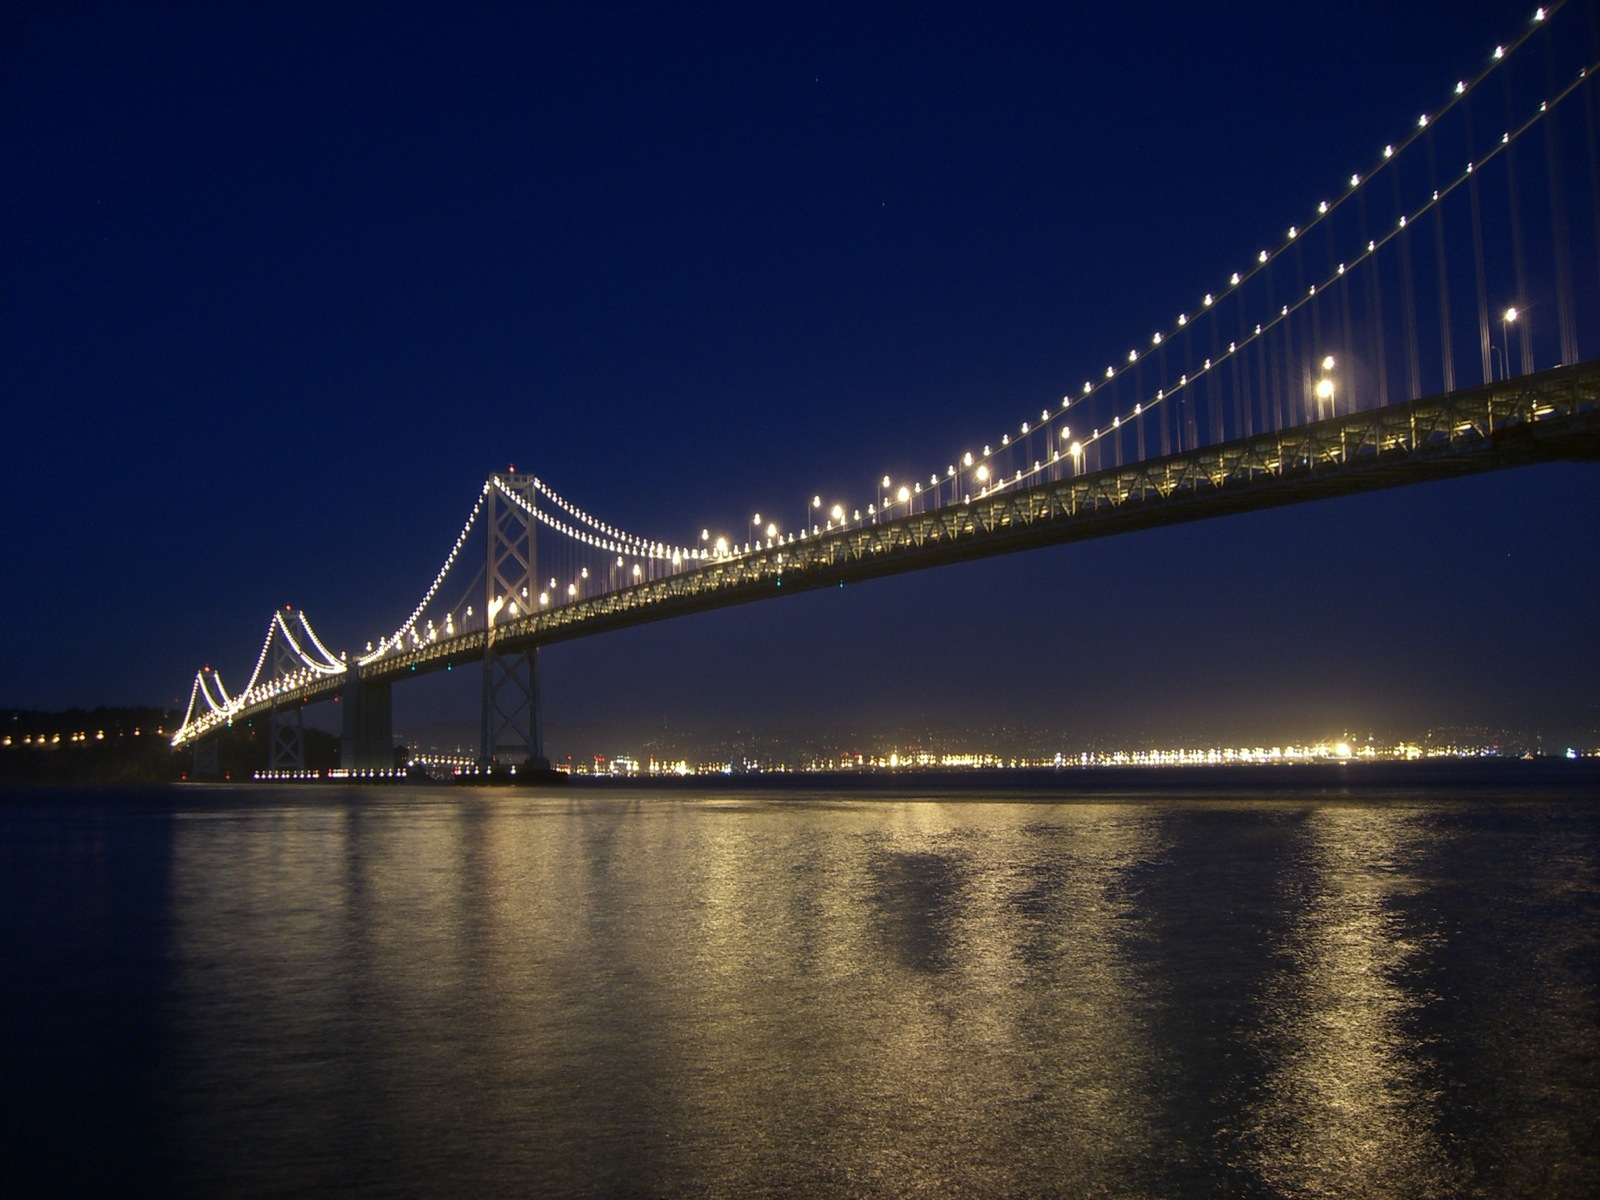 San Francisco (CA) United States  city images : Travel Trip Journey: Bay Bridge San Francisco California United States